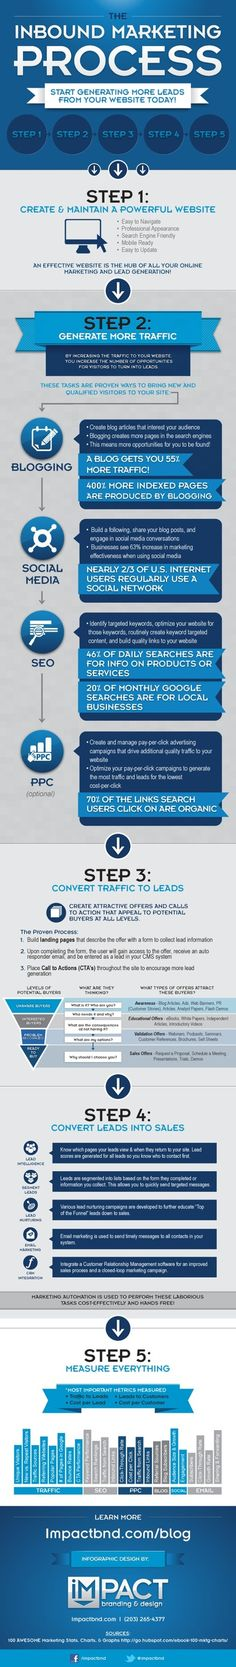 How Inbound Marketing Works, From Start to Finish